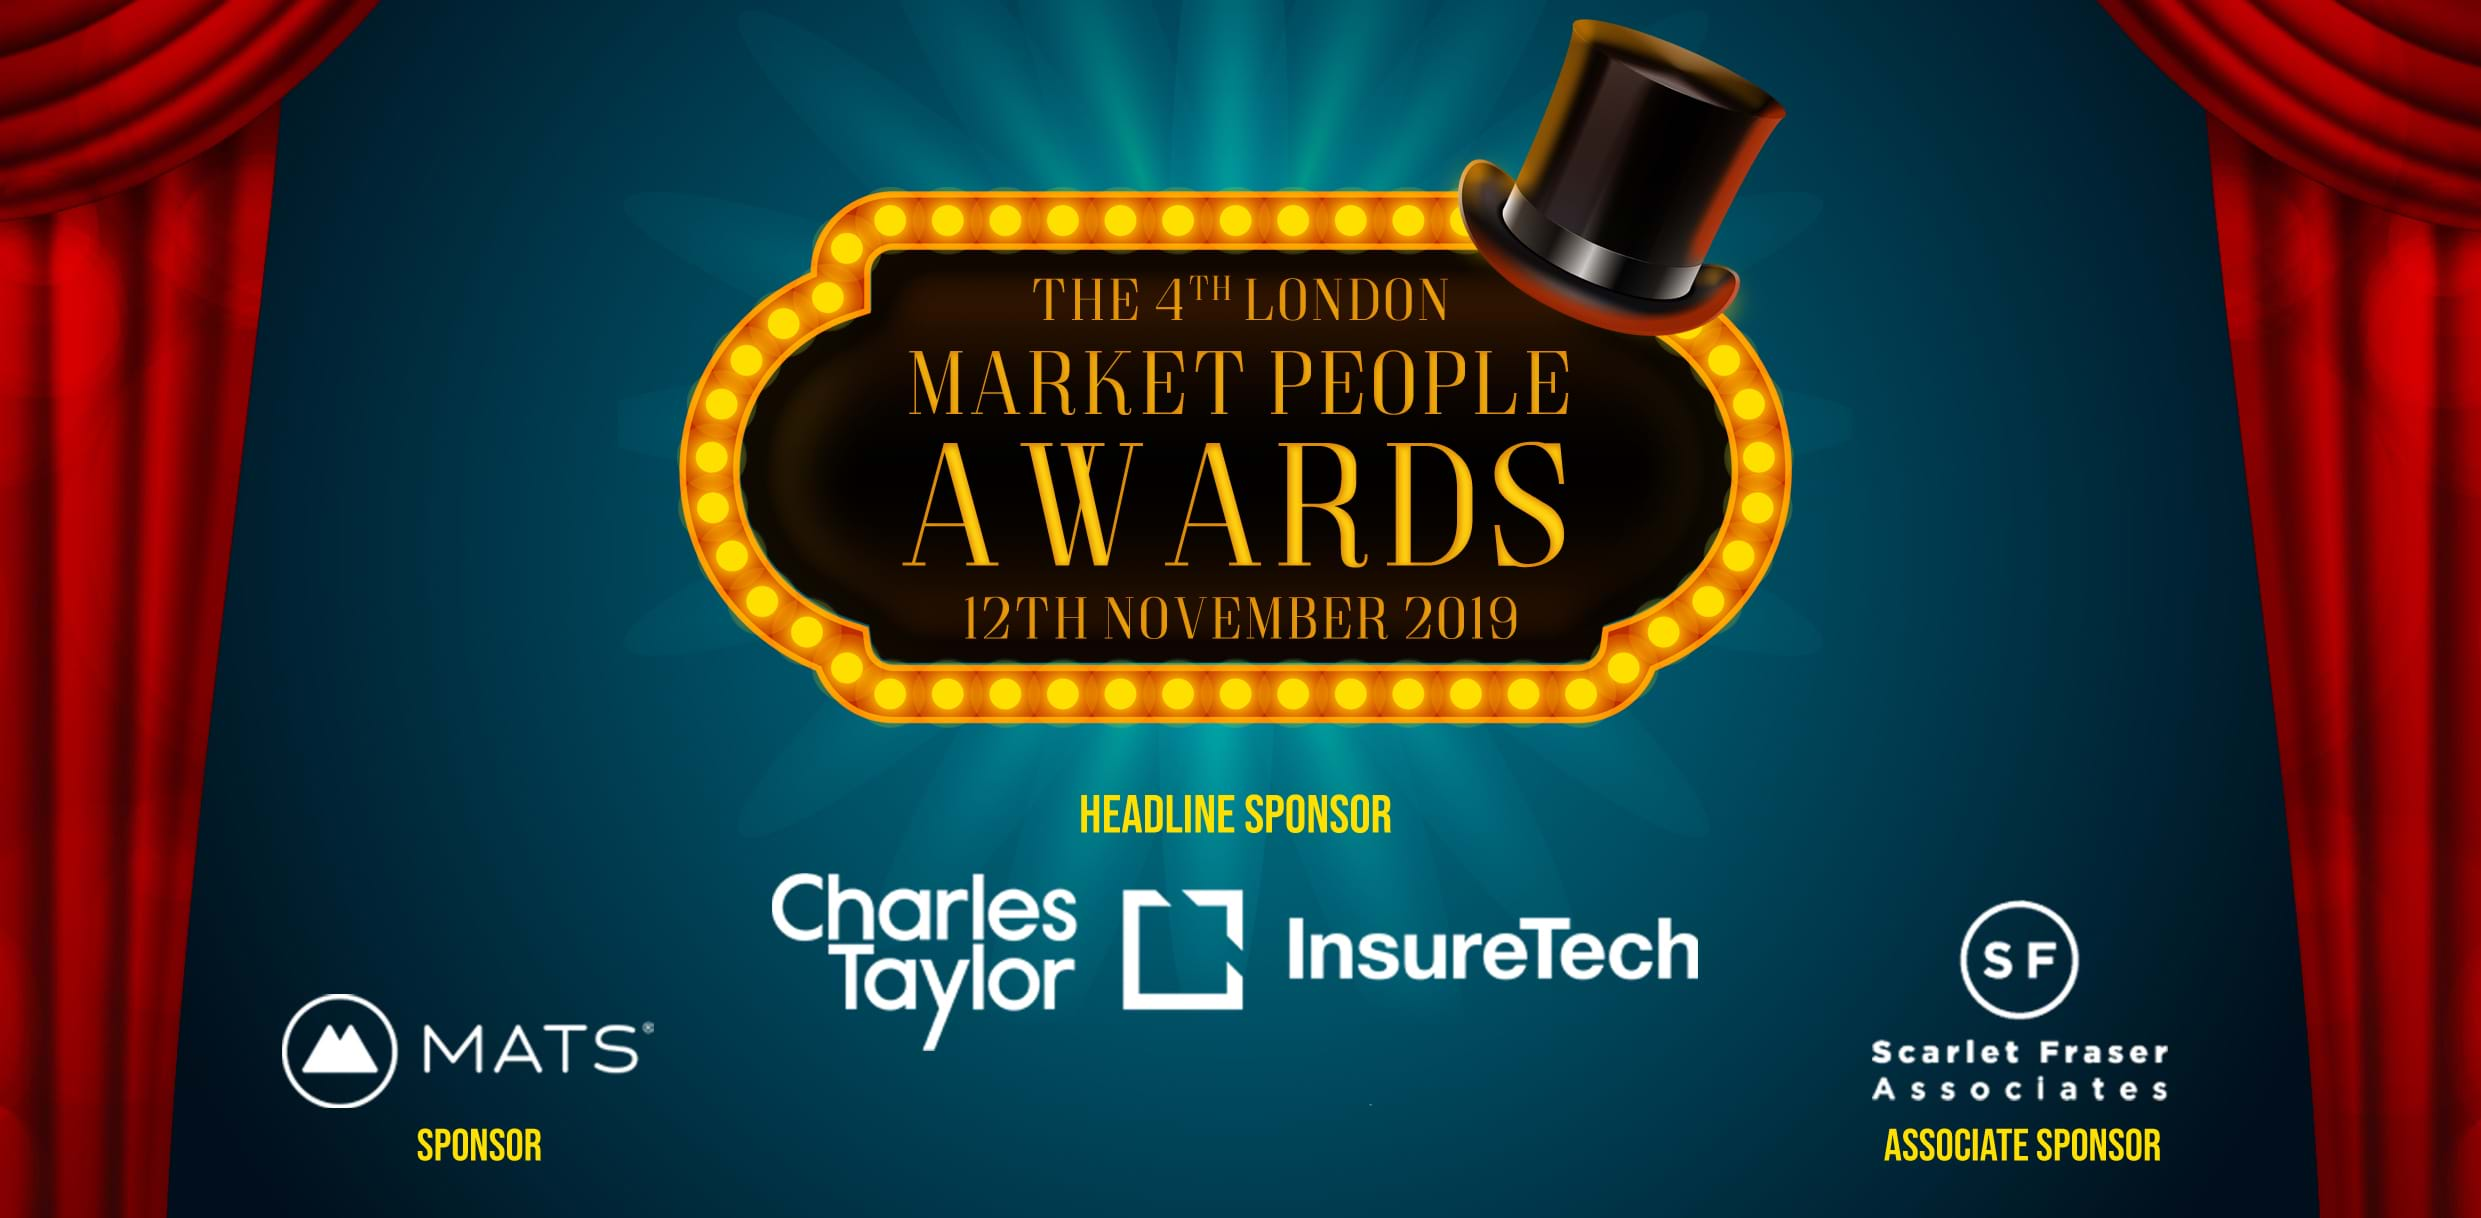 The 4th London Market People Awards